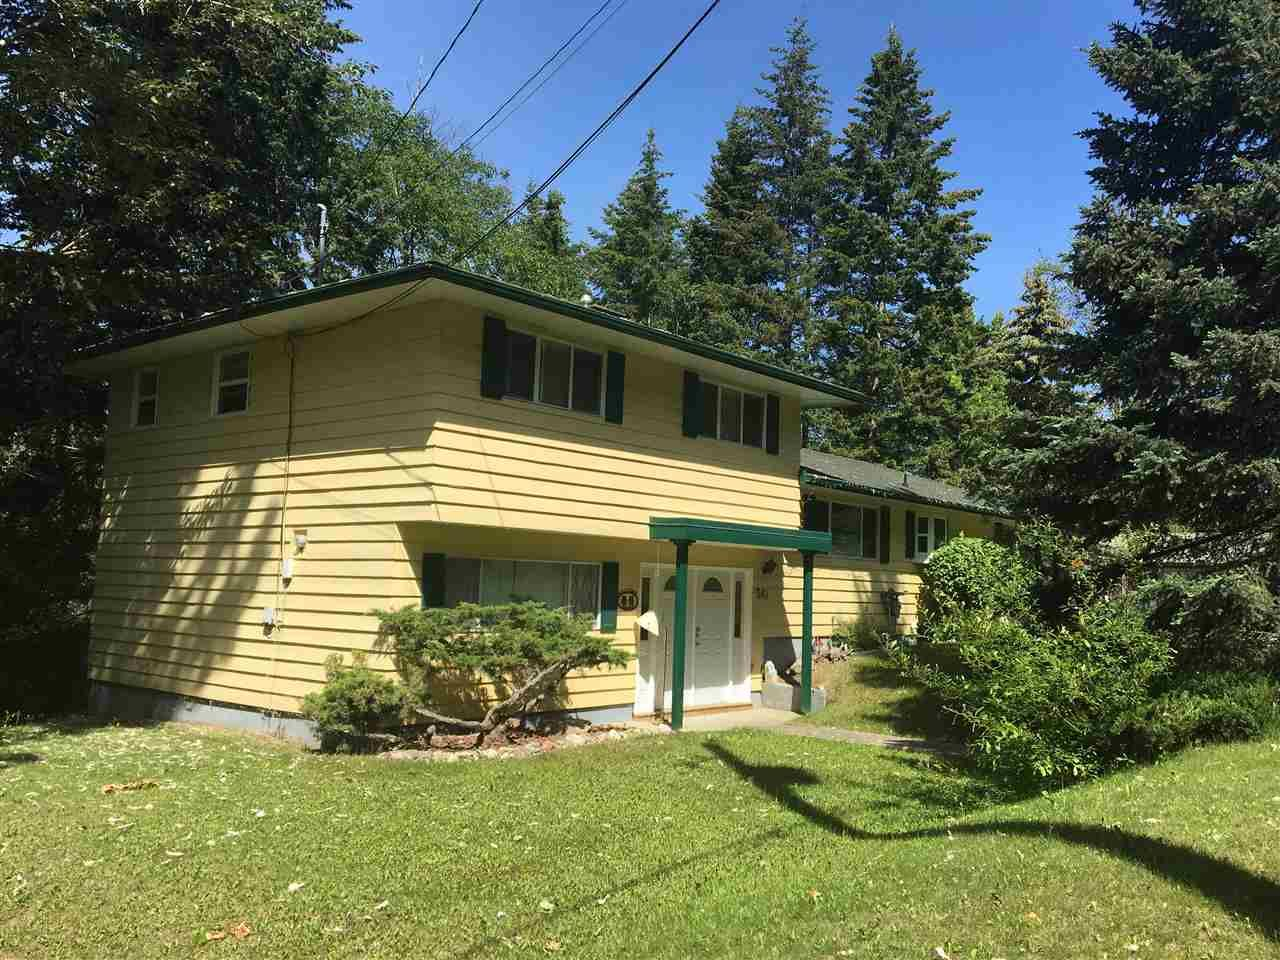 Photo 2: Photos: 341 RICHARDS Road in Quesnel: Quesnel - Town House for sale (Quesnel (Zone 28))  : MLS®# R2279651